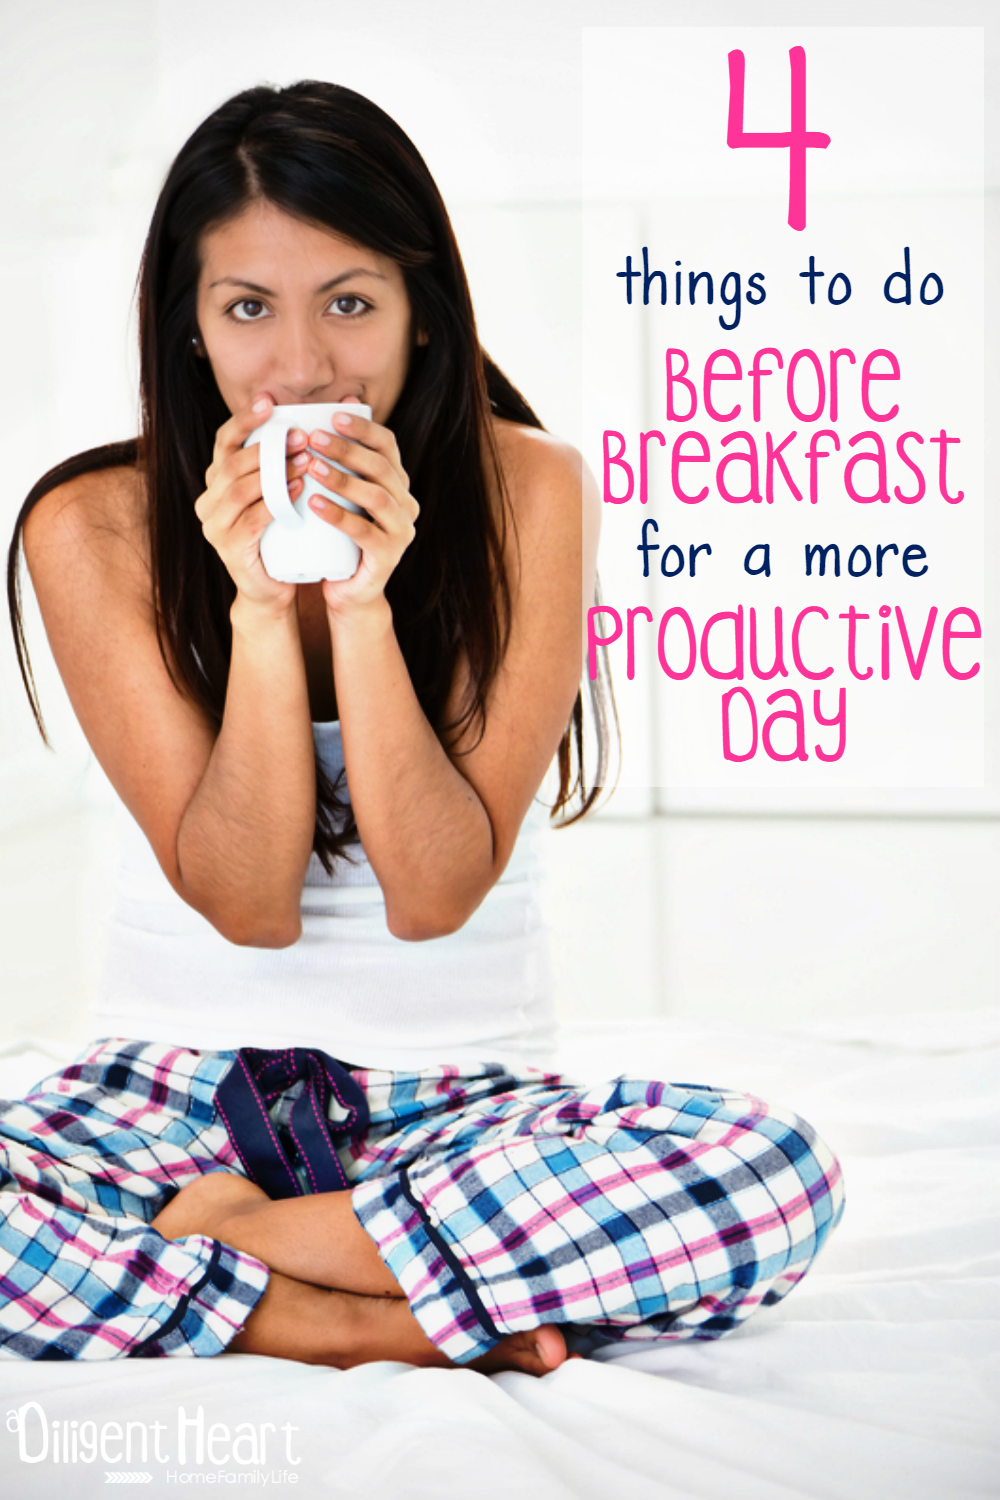 Here are 4 things I suggest doing before breakfast (maybe not before coffee though) that have helped me tackle my day without the stress and aid me in having a productive day! 4 things to do Before Breakfast for a more Productive Day I adiligentheart.com